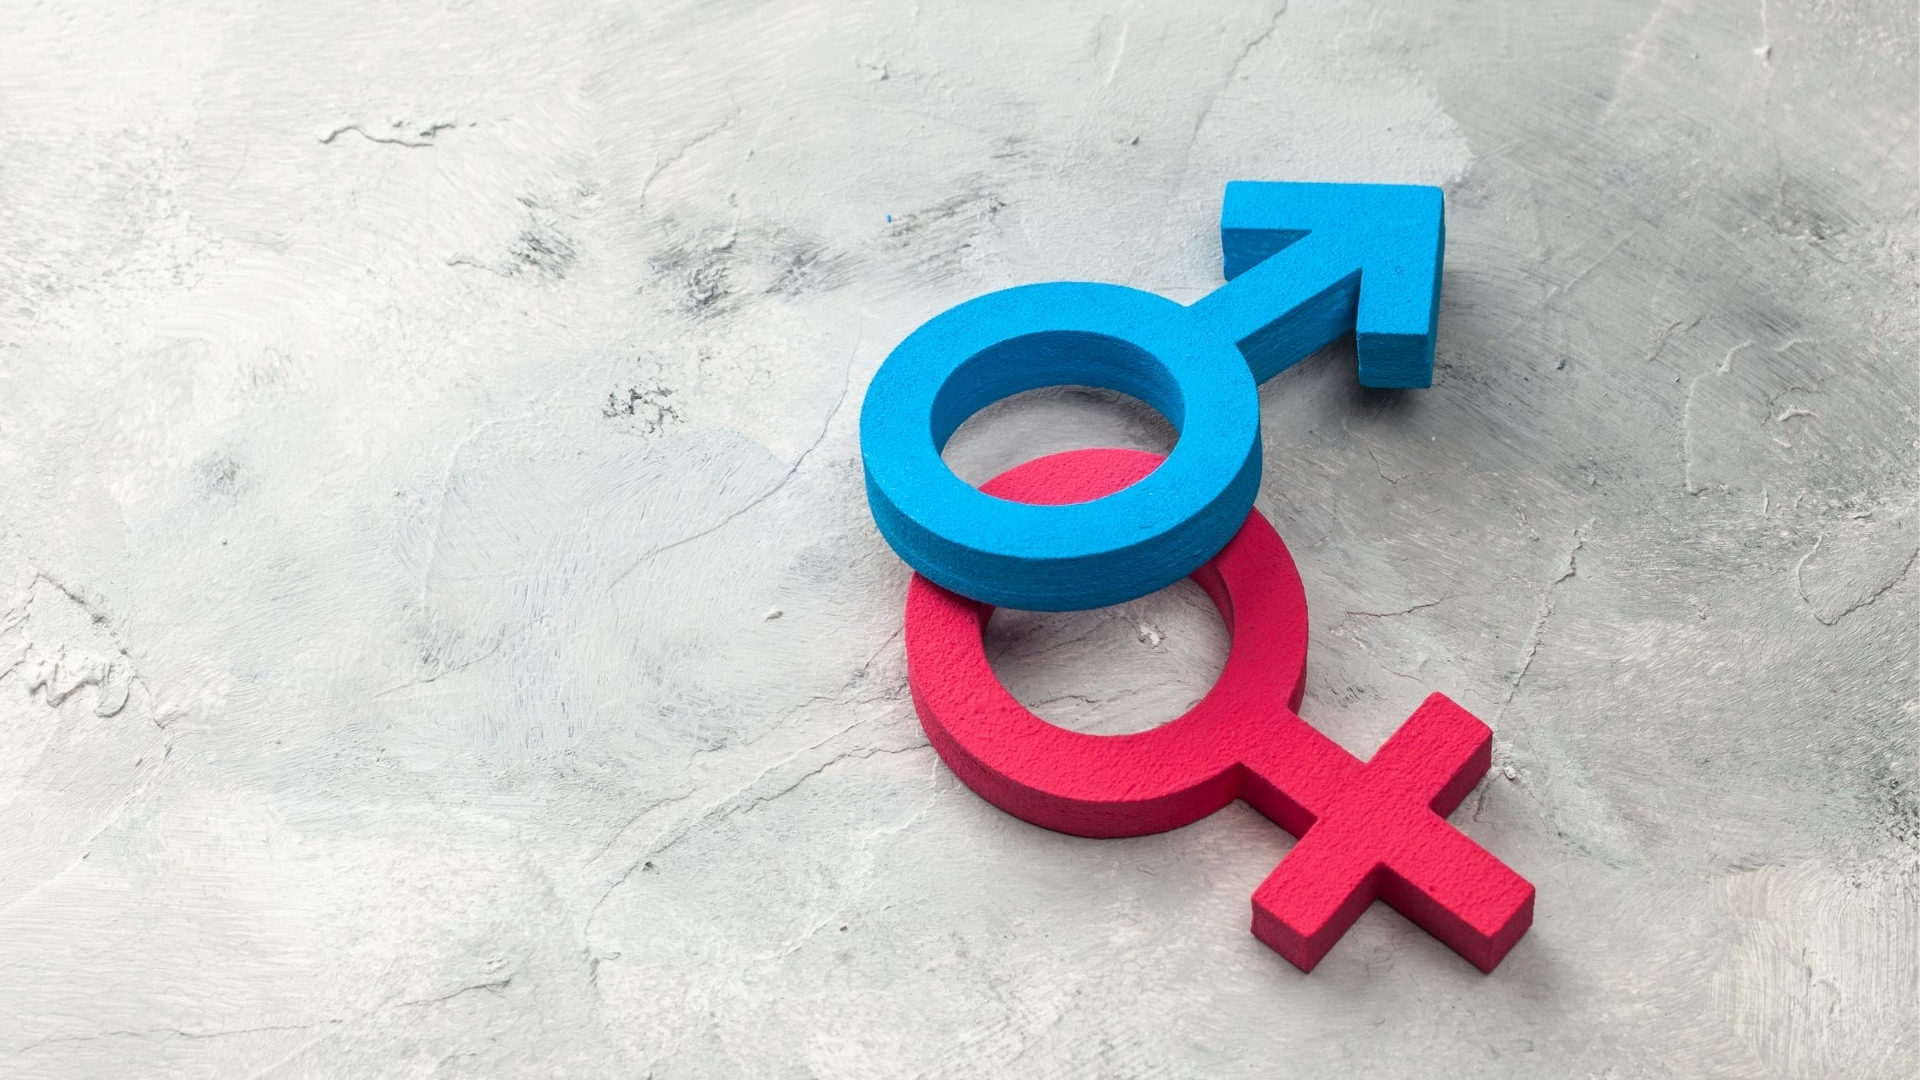 God as He not She: Gender symbols with male over female